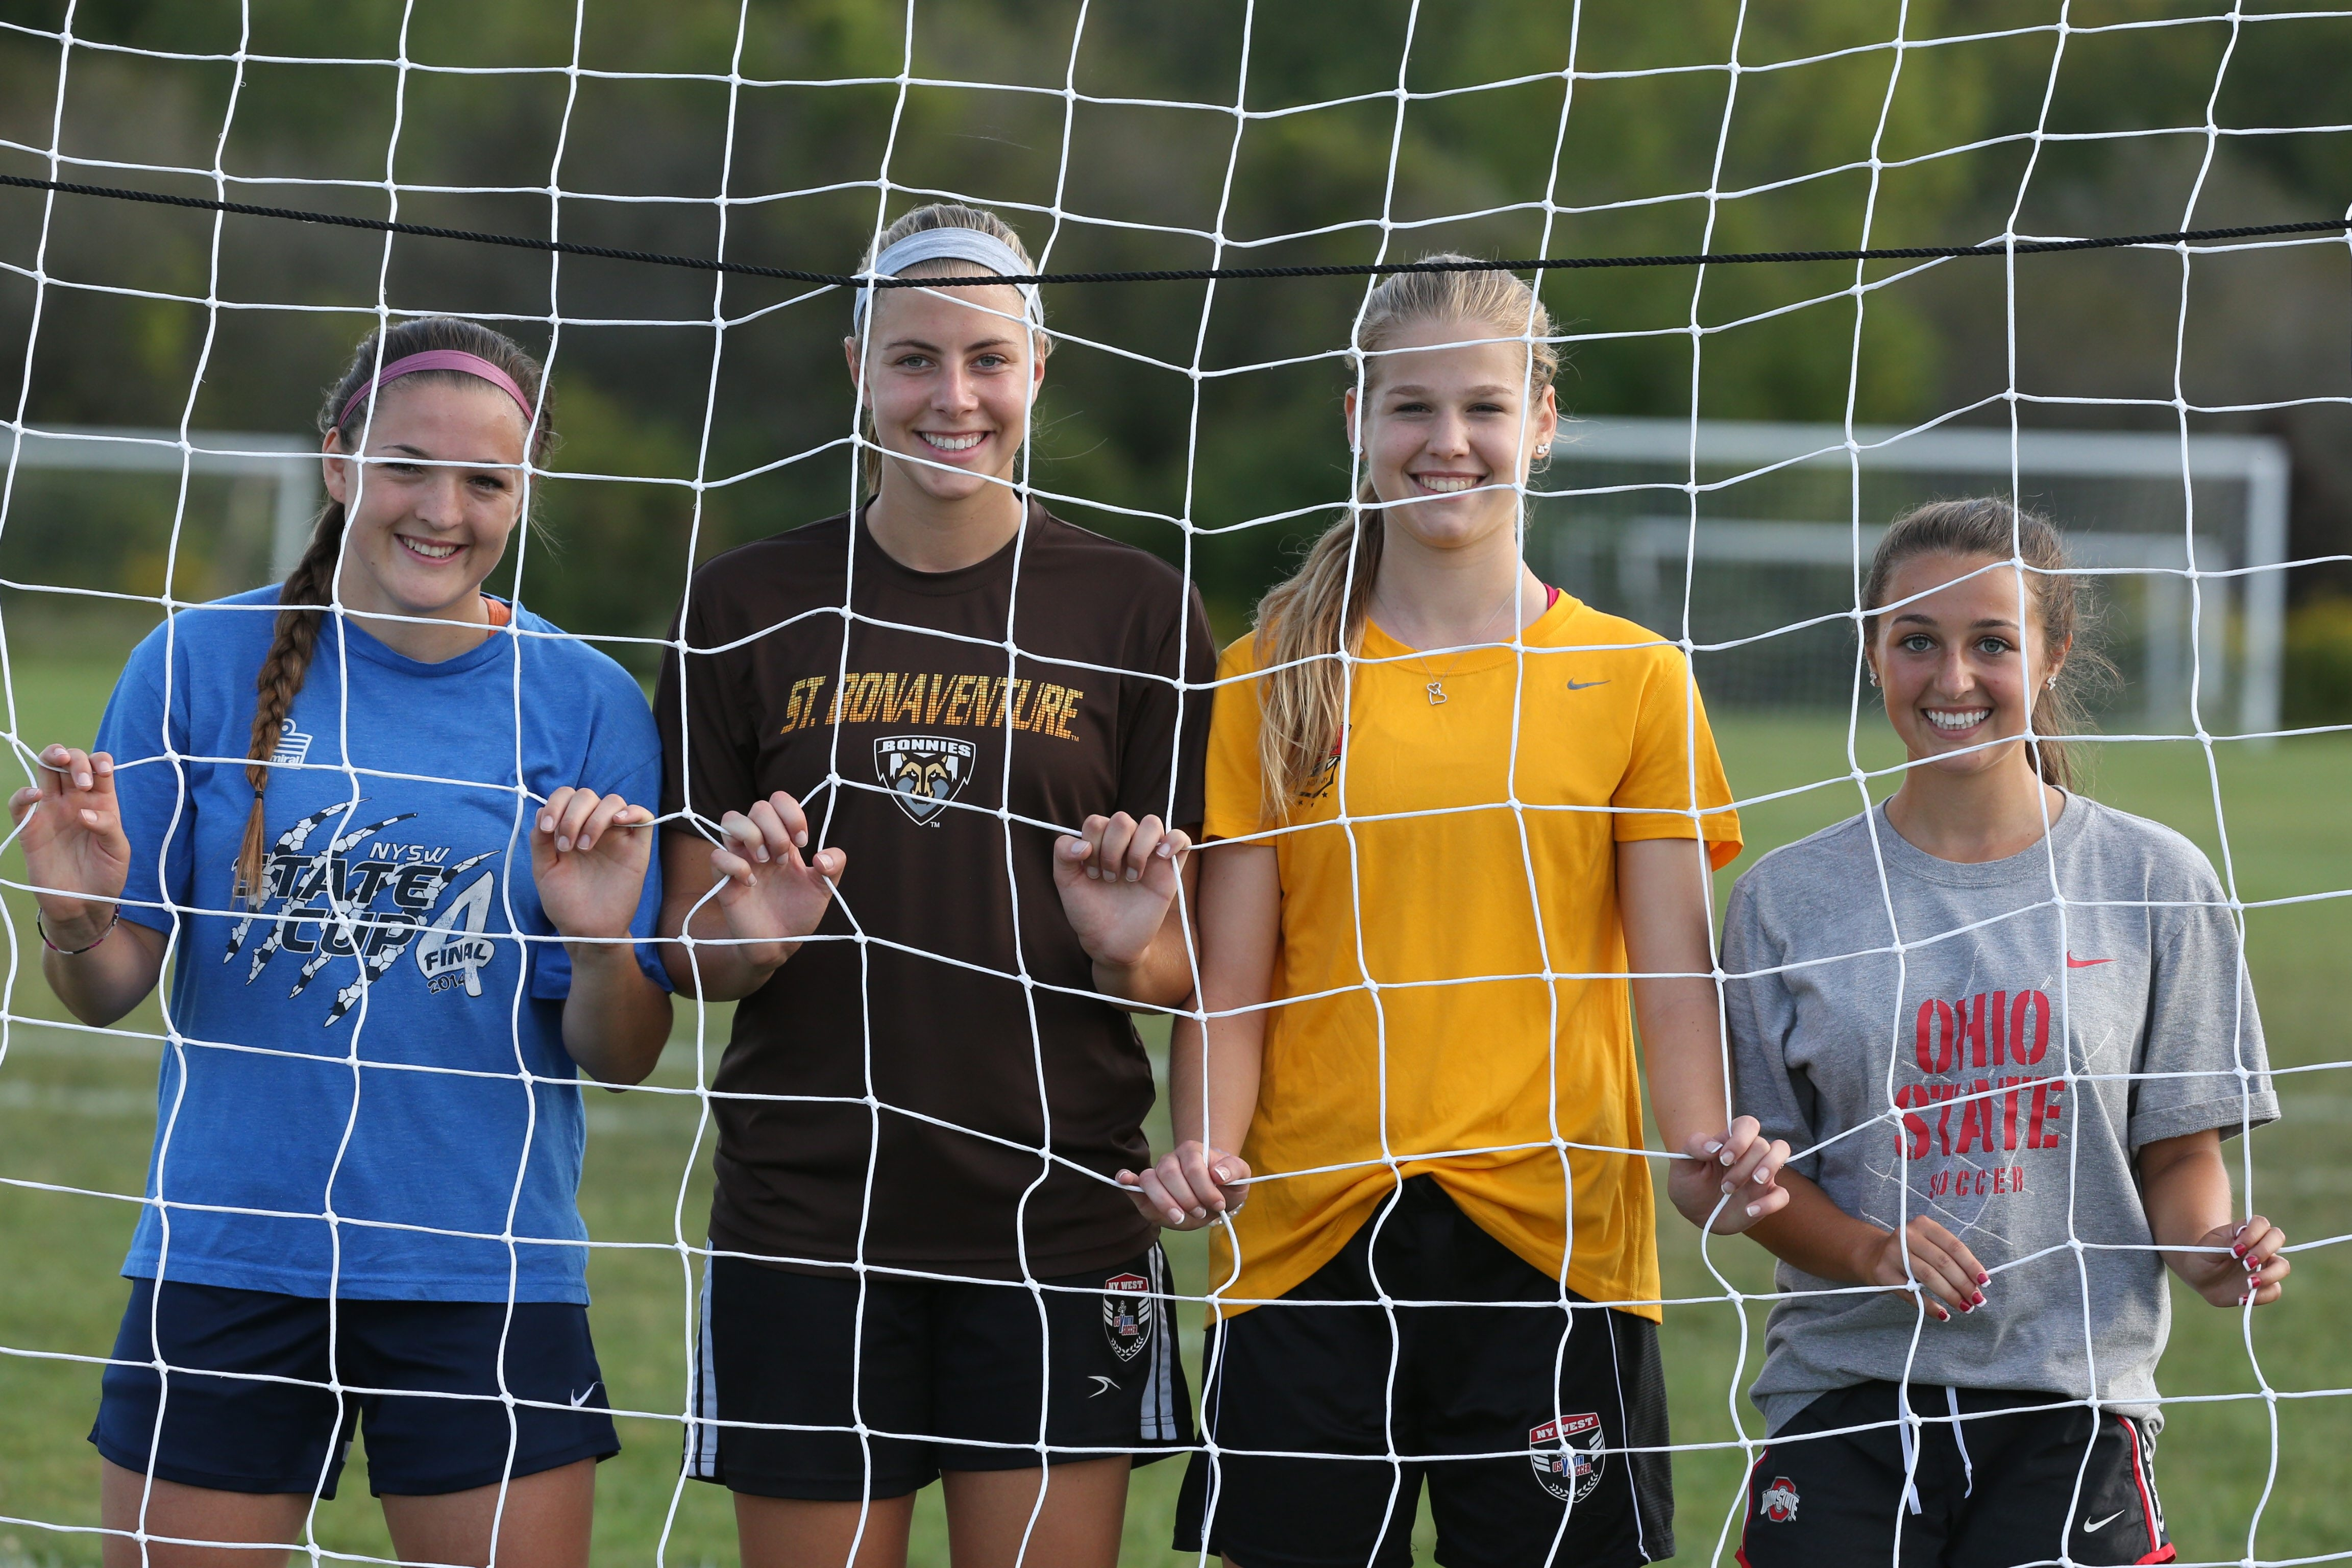 Left to right, Shannon Carr (Valparaiso), Sydney Cerza (St. Bonaventure), Hannah Spitzer (Duquesne) and Riley Bowers (Ohio State) are among Clarence soccer players who will move on to Division I college teams to play.